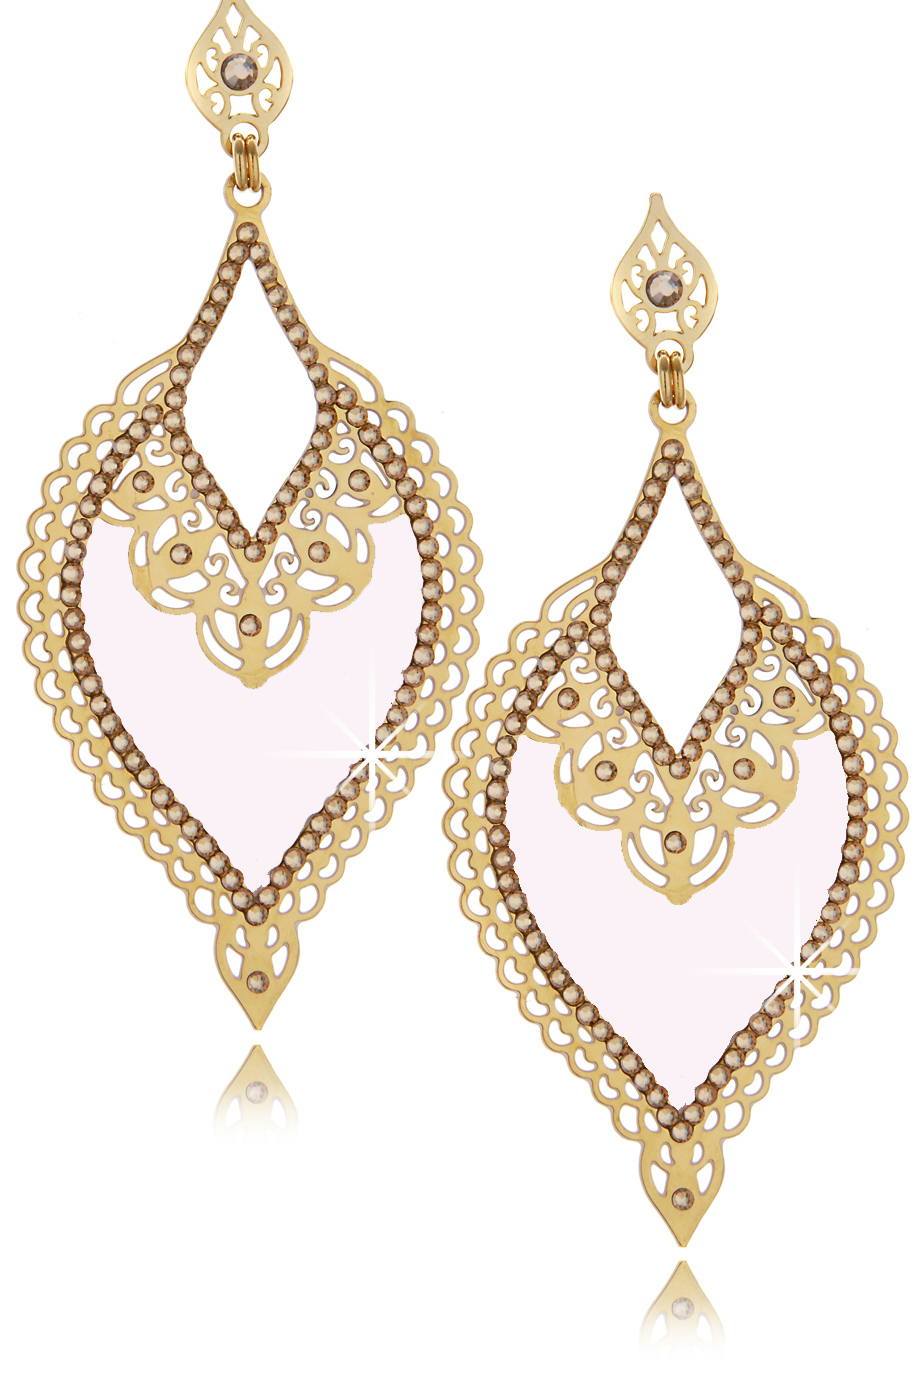 LK DESIGNS MIDNIGHT MIST Nude Earrings - ACCESSORIES | JEWELRY | Earrings | Pierced | PRET-A-BEAUTE.COM